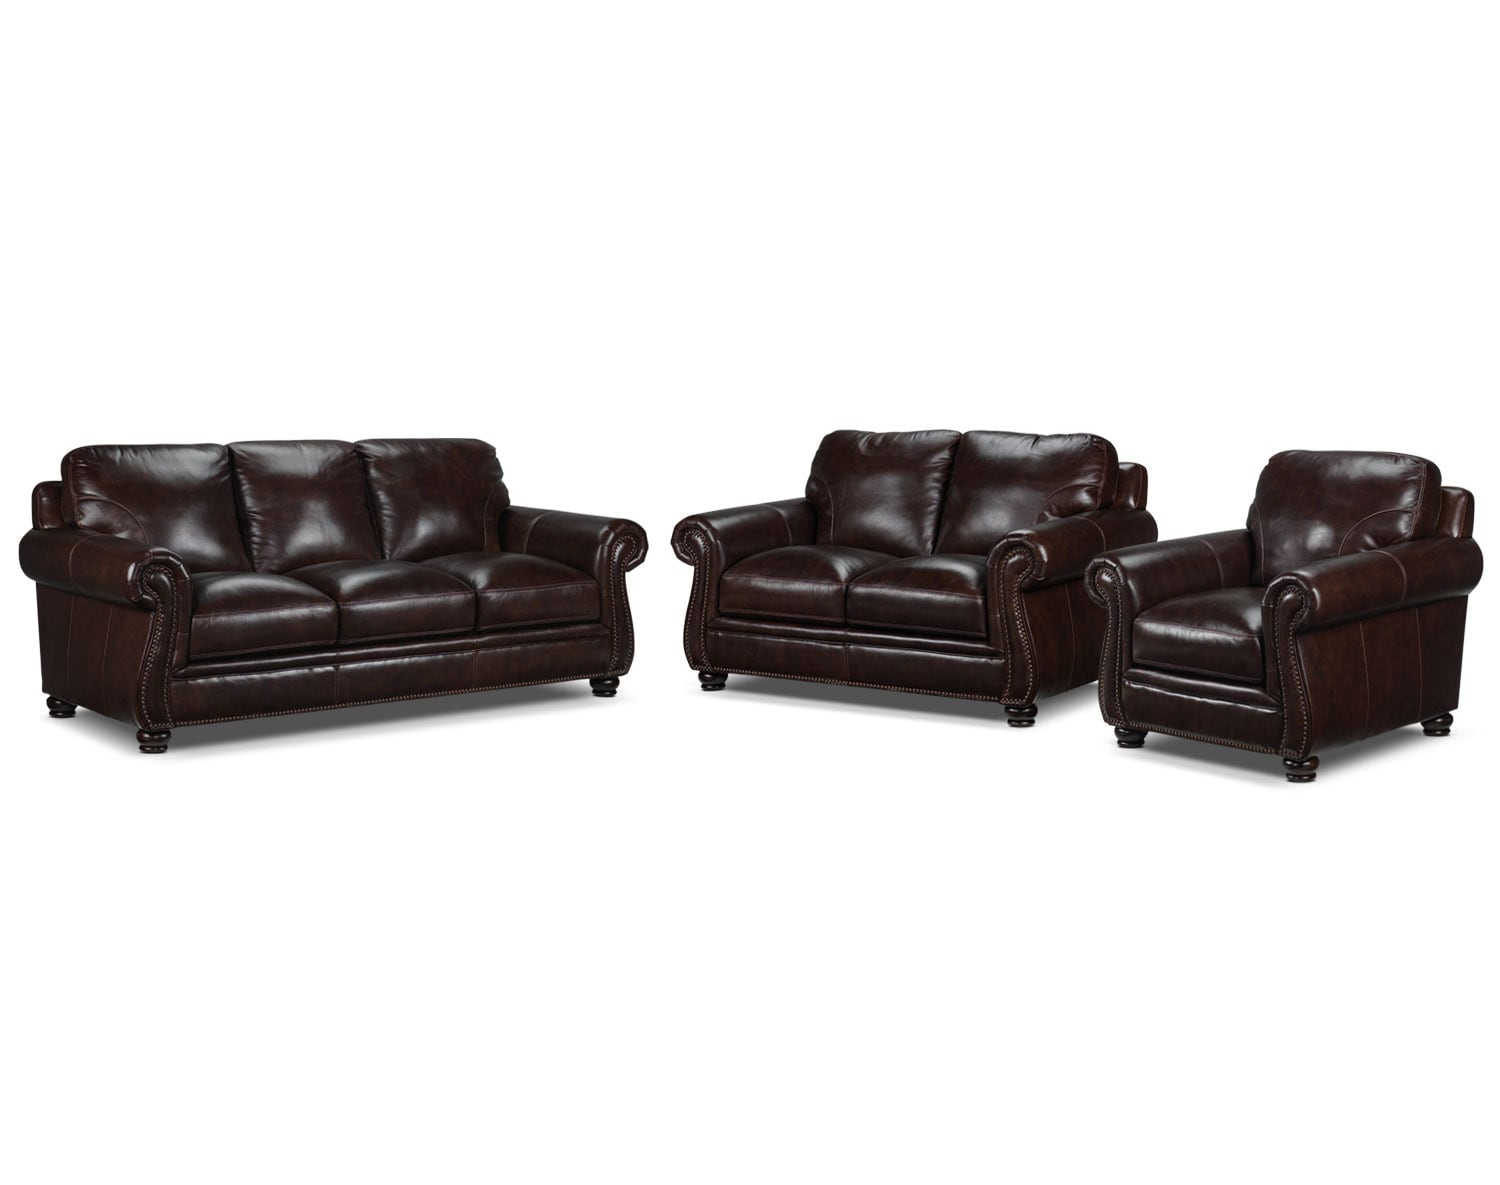 The Rafferty Collection - Walnut